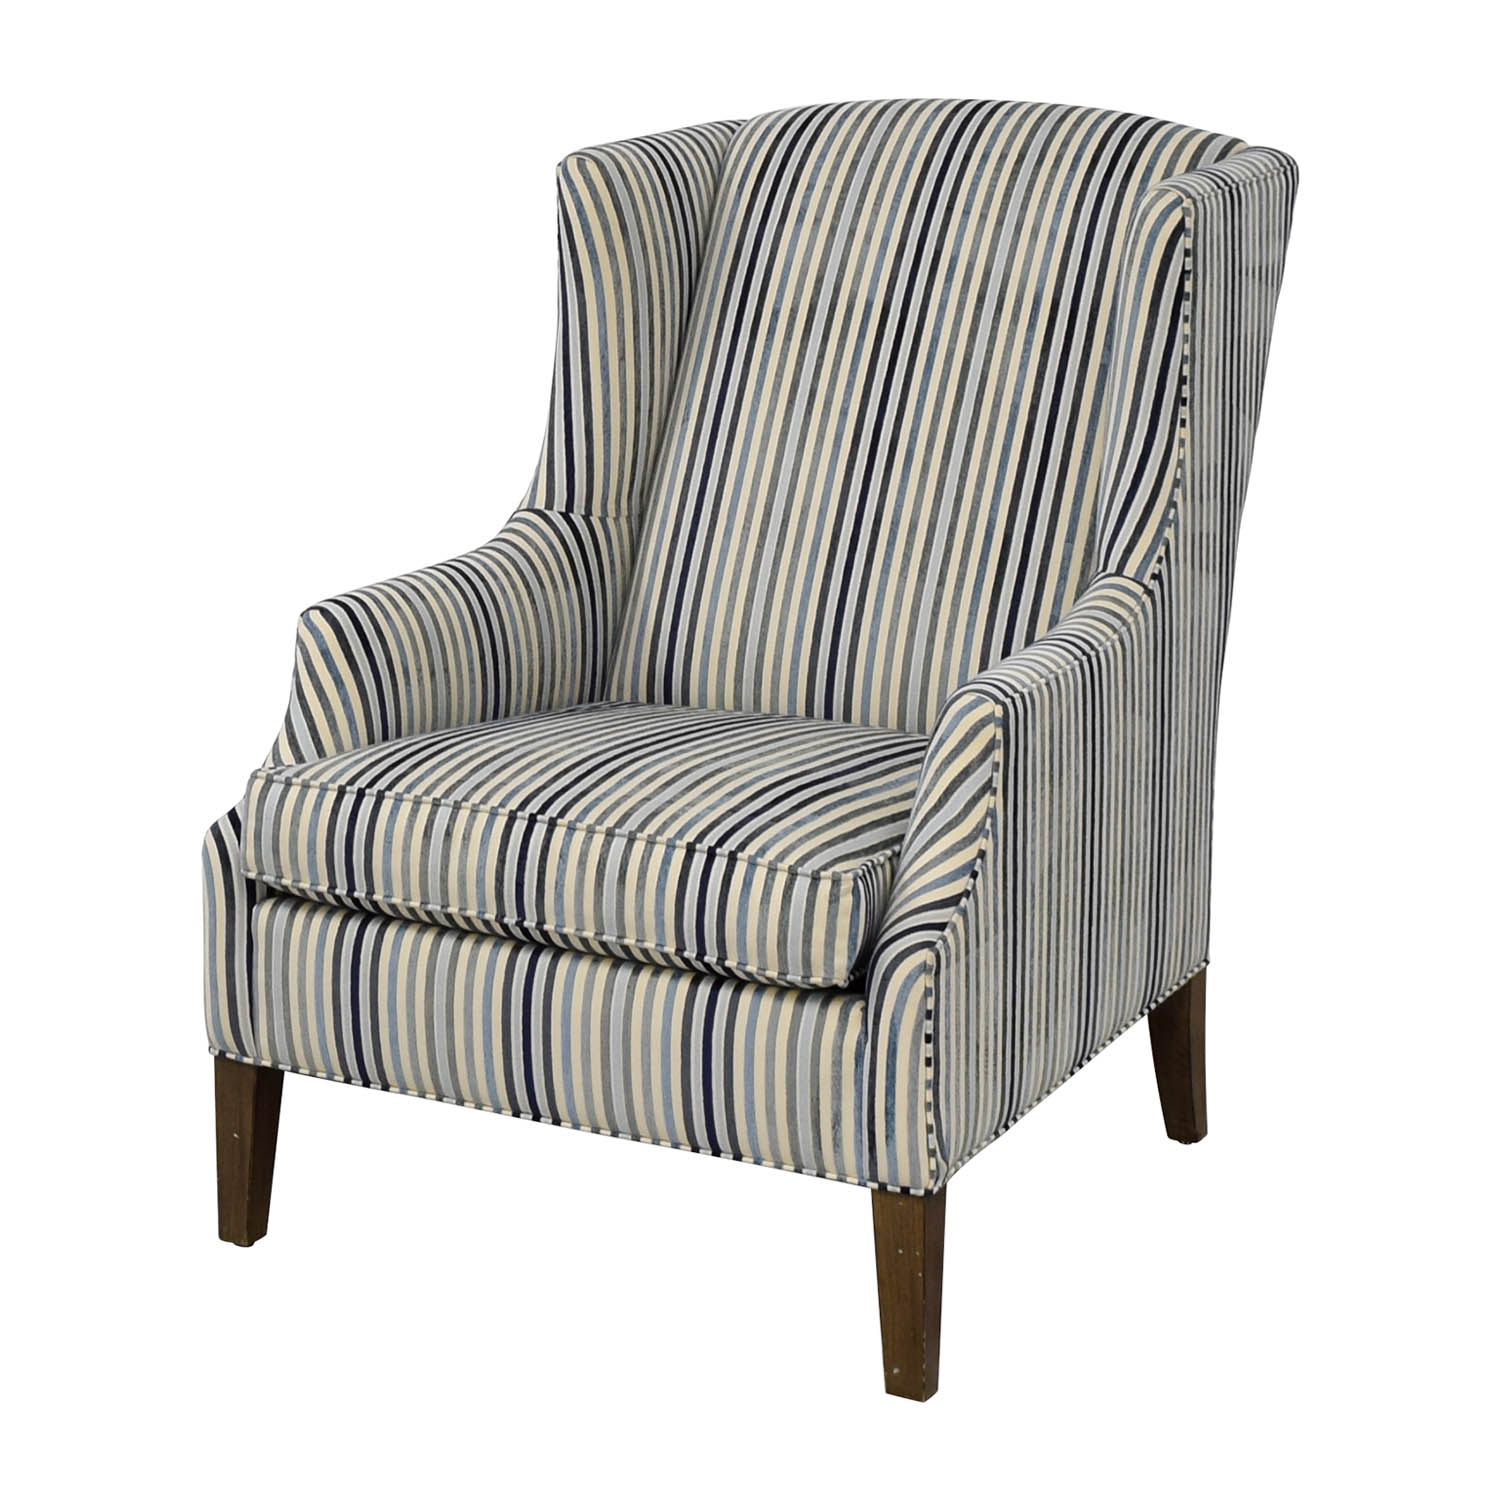 86 Off Ethan Allen Ethan Allen Custom Upholstered Striped Accent Chair Chairs